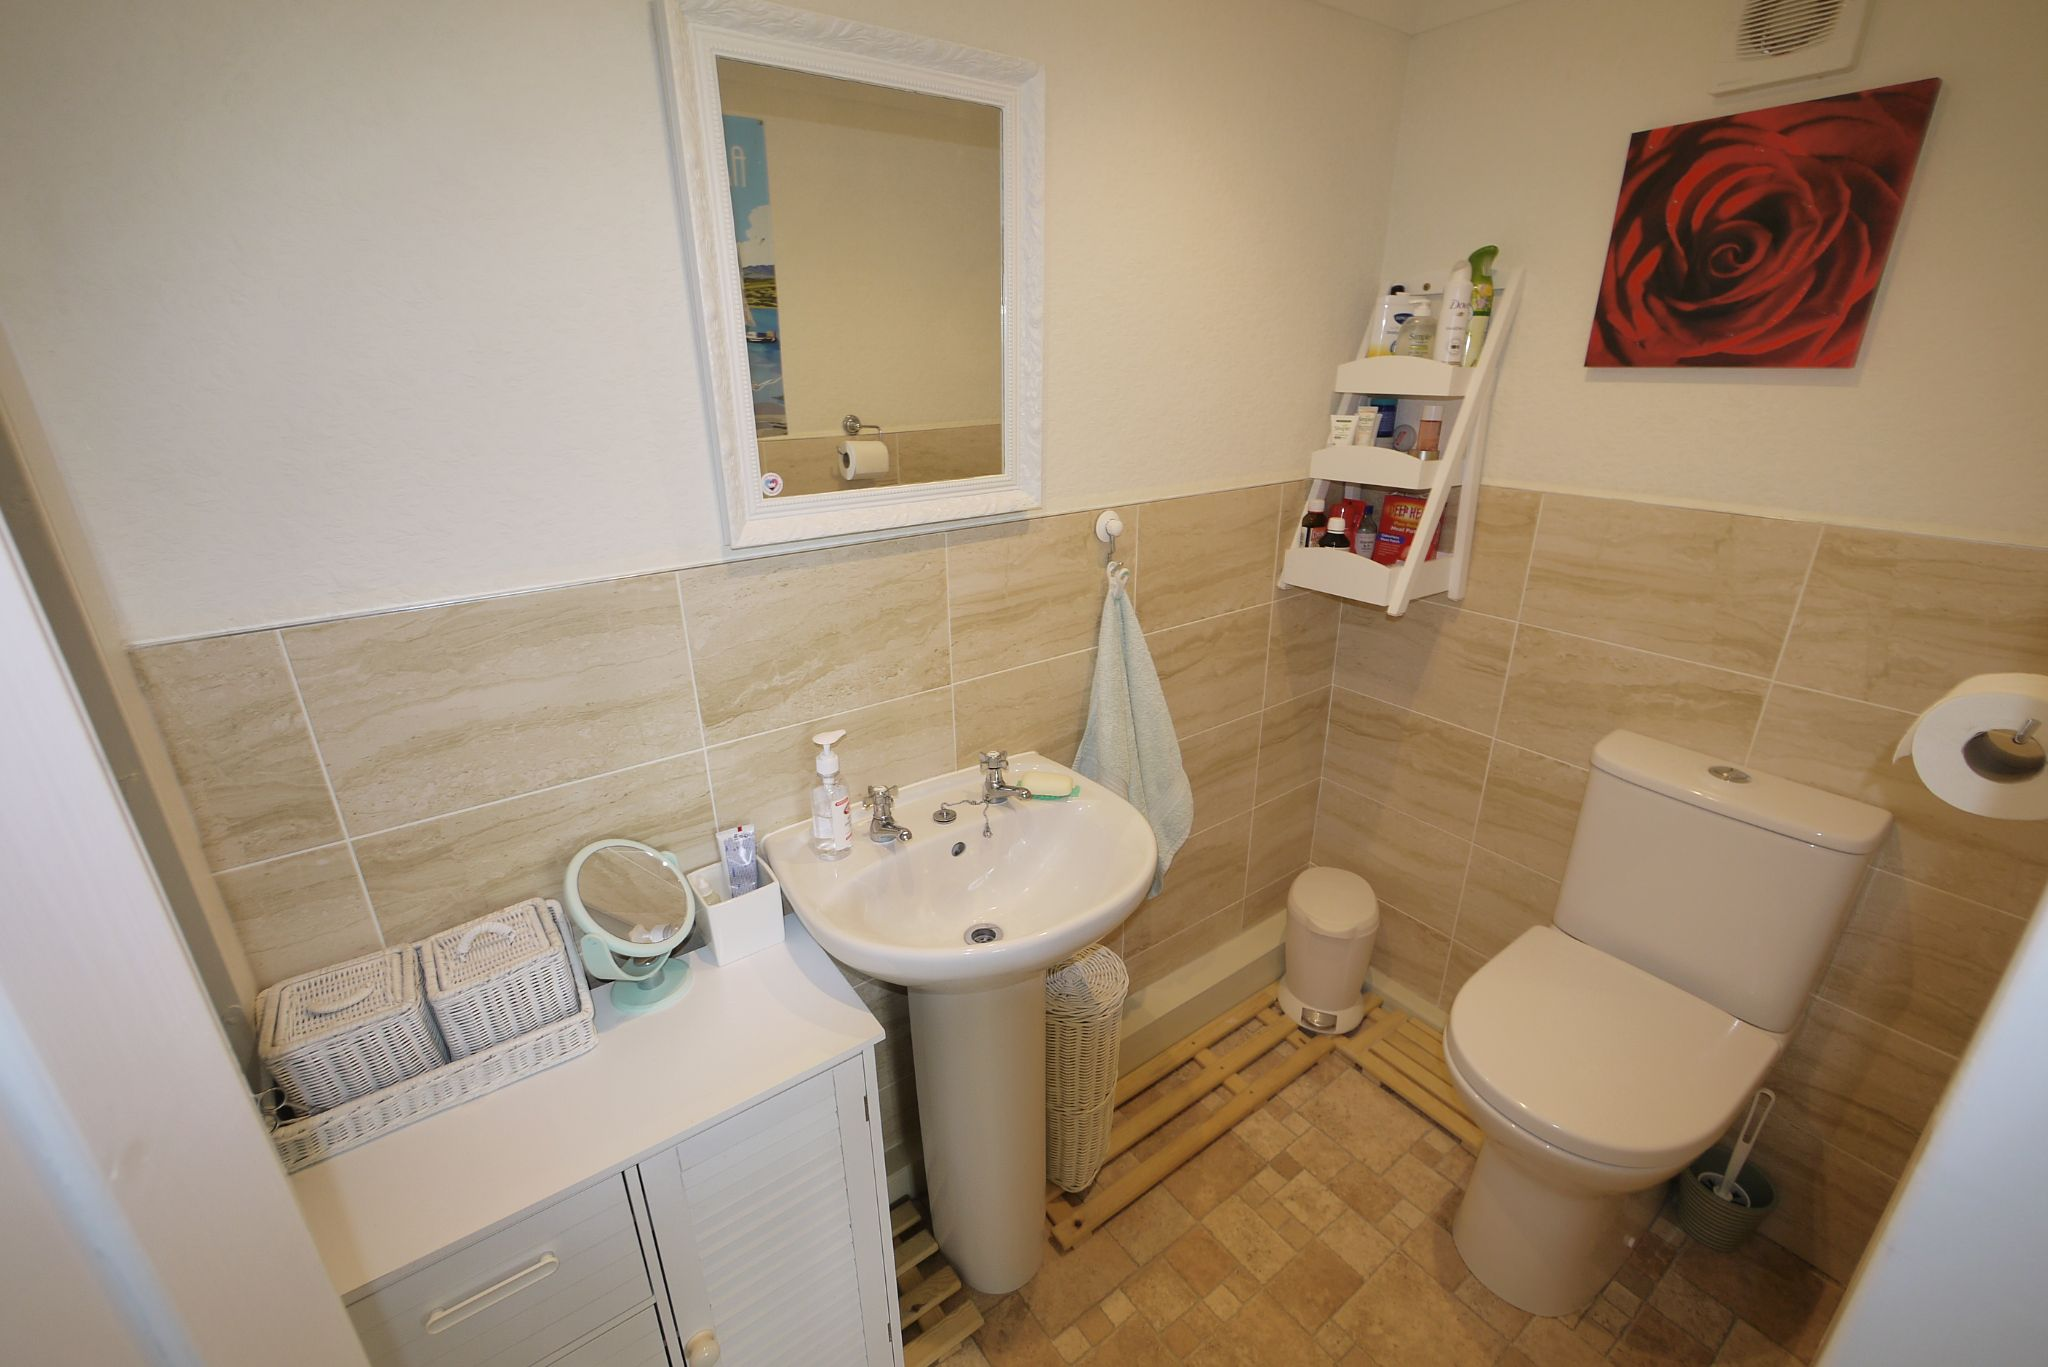 2 bedroom detached bungalow SSTC in Brighouse - Ensuite cloakroom.